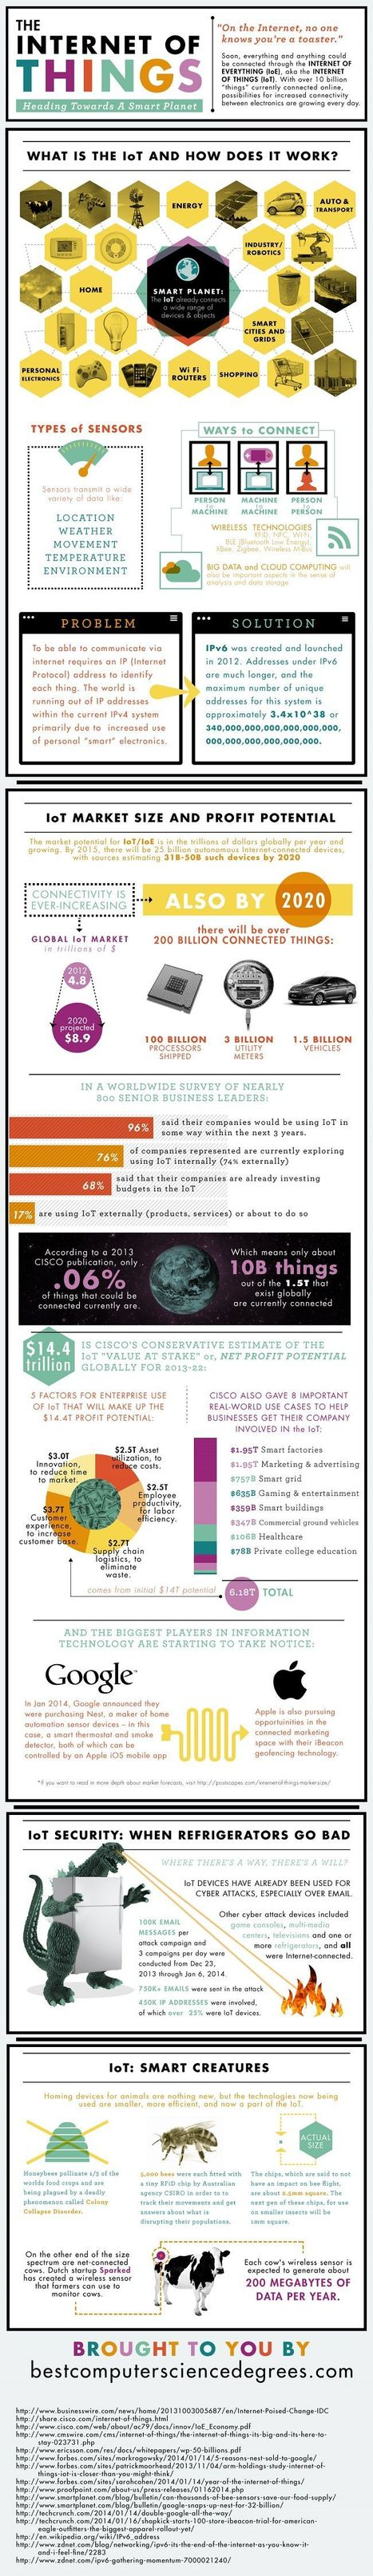 [Infographic] What is the Internet of Things? | New technologies & social networks | Scoop.it